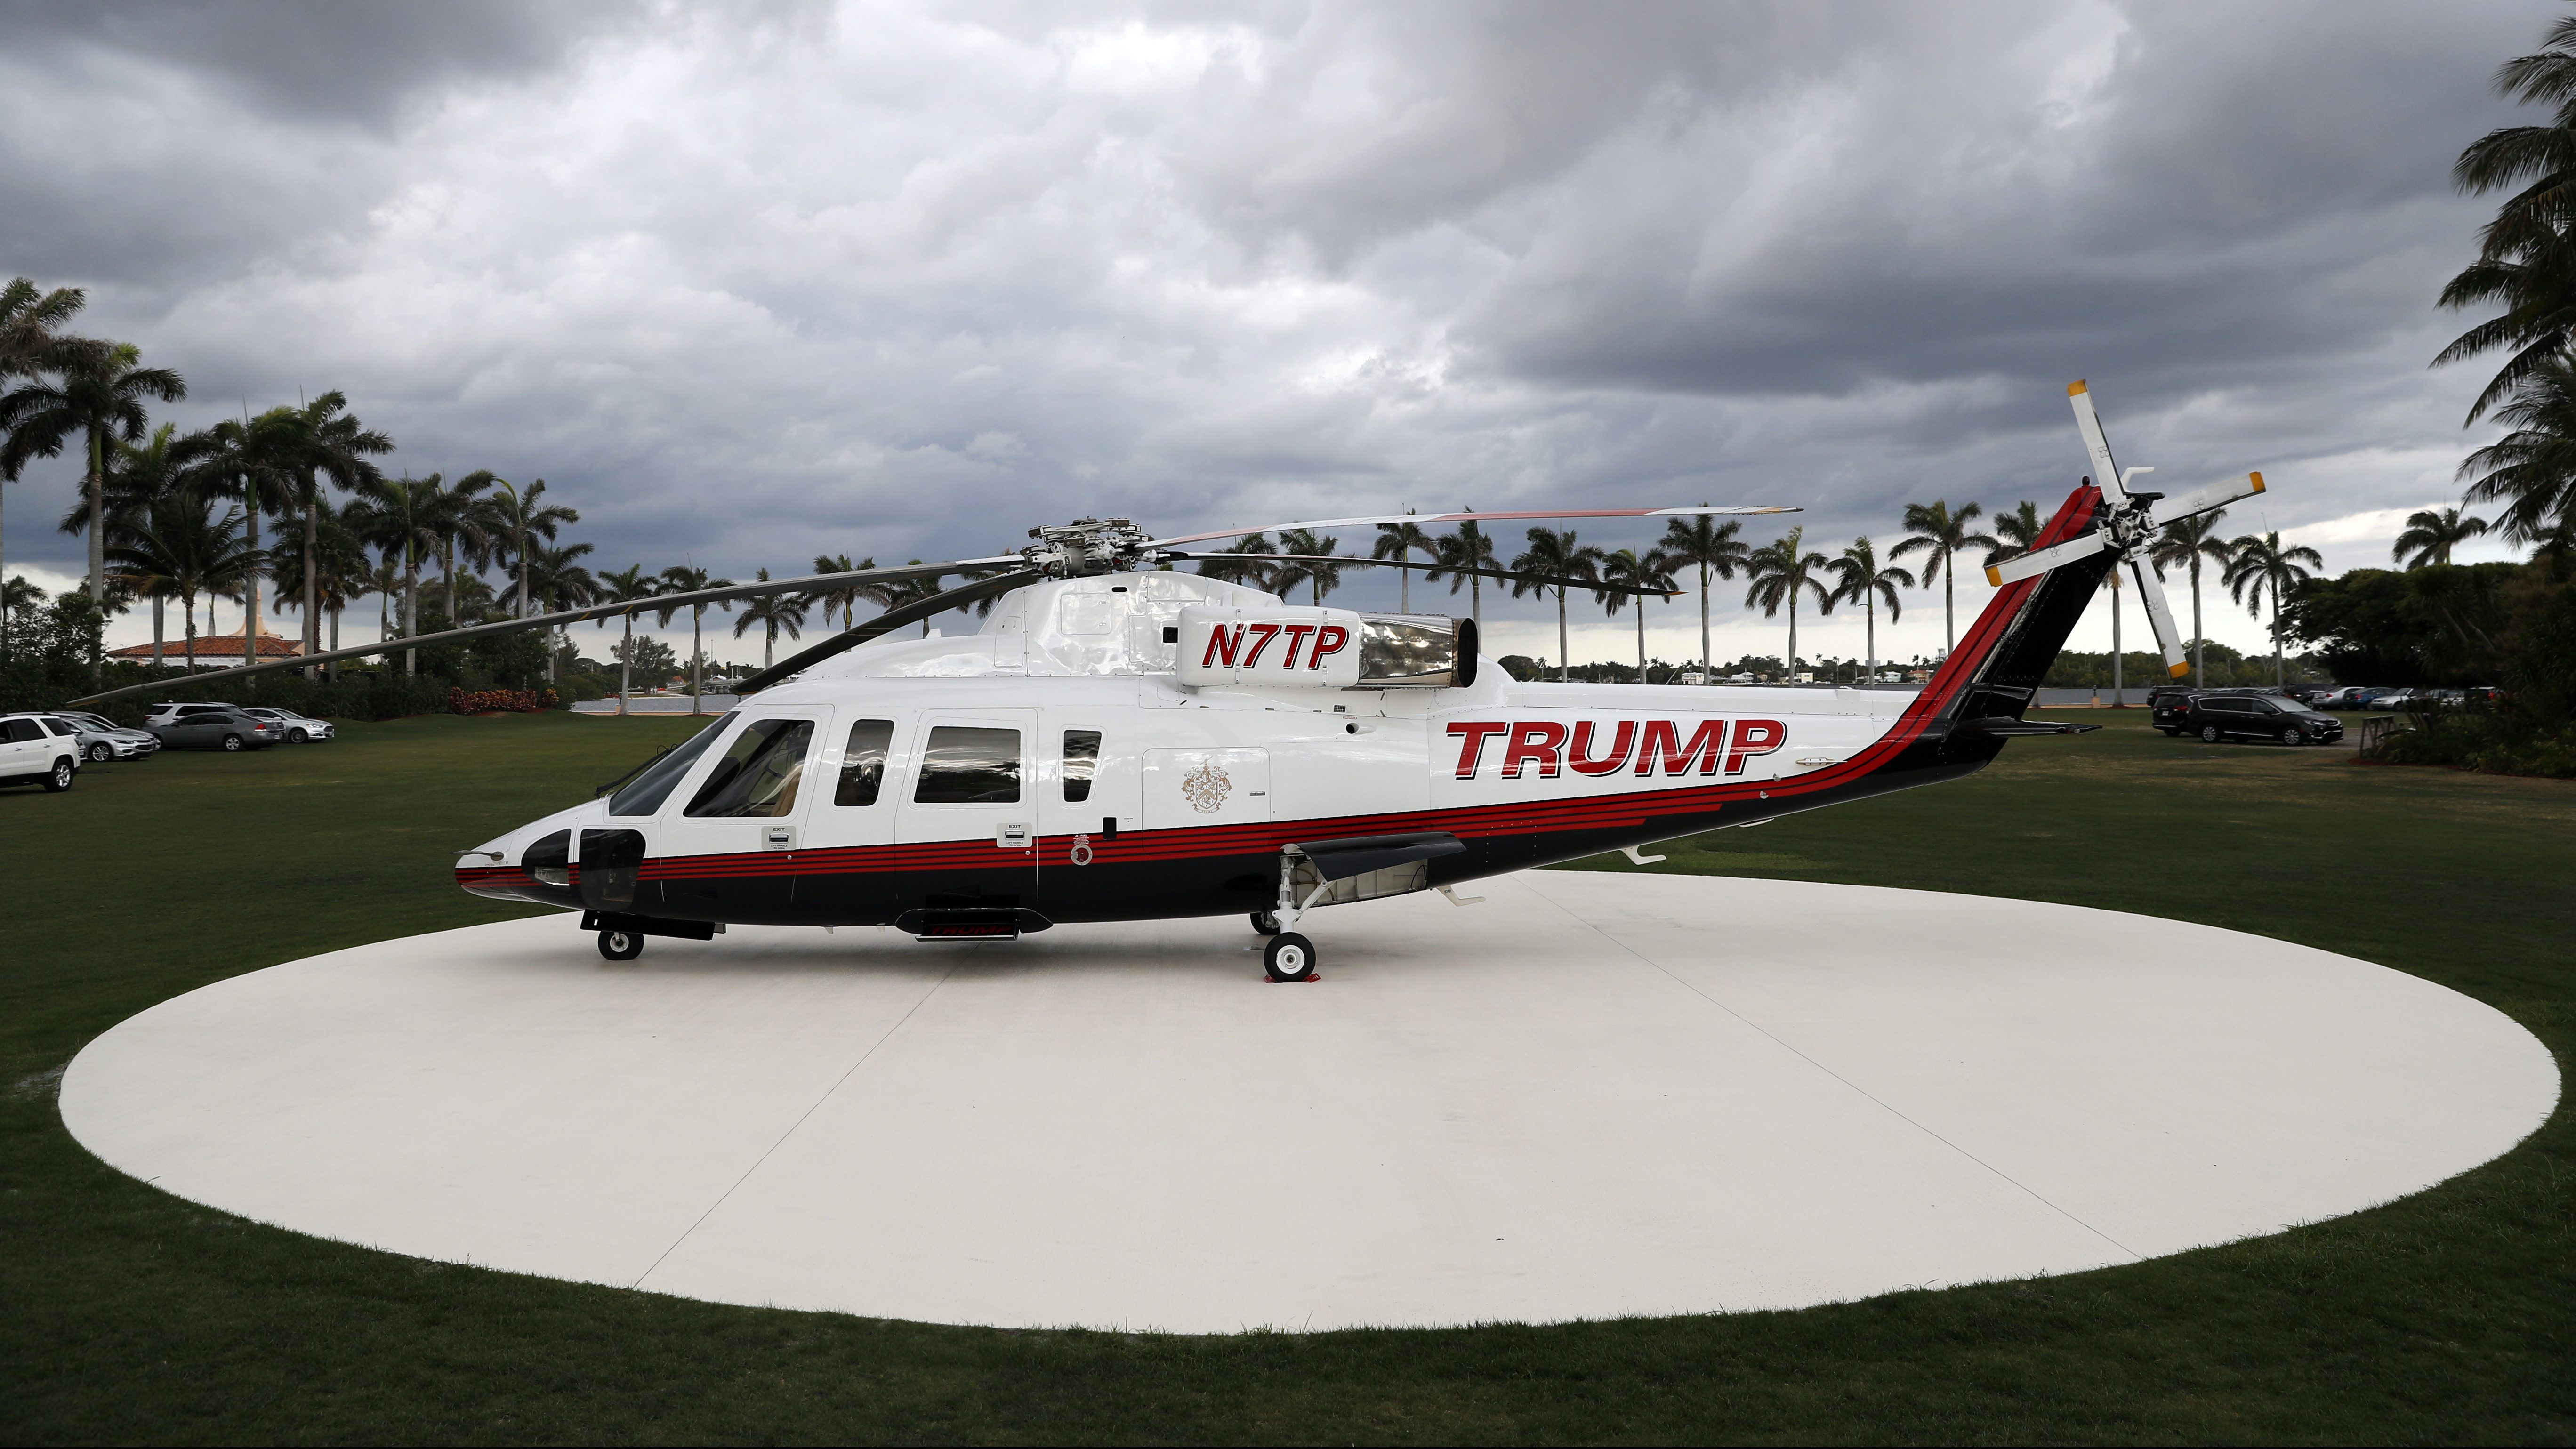 A personal helicopter of President Donald Trump sits on the helipad at Mar-a-Lago, Sunday, April 9, 2017, in Palm Beach, Fla. The helicopter appeared Sunday on the newly paved helipad of Mar-a-Lago, then left a few hours later. The White House didn't respond to questions about the reason the helicopter was there. (AP Photo/Alex Brandon)